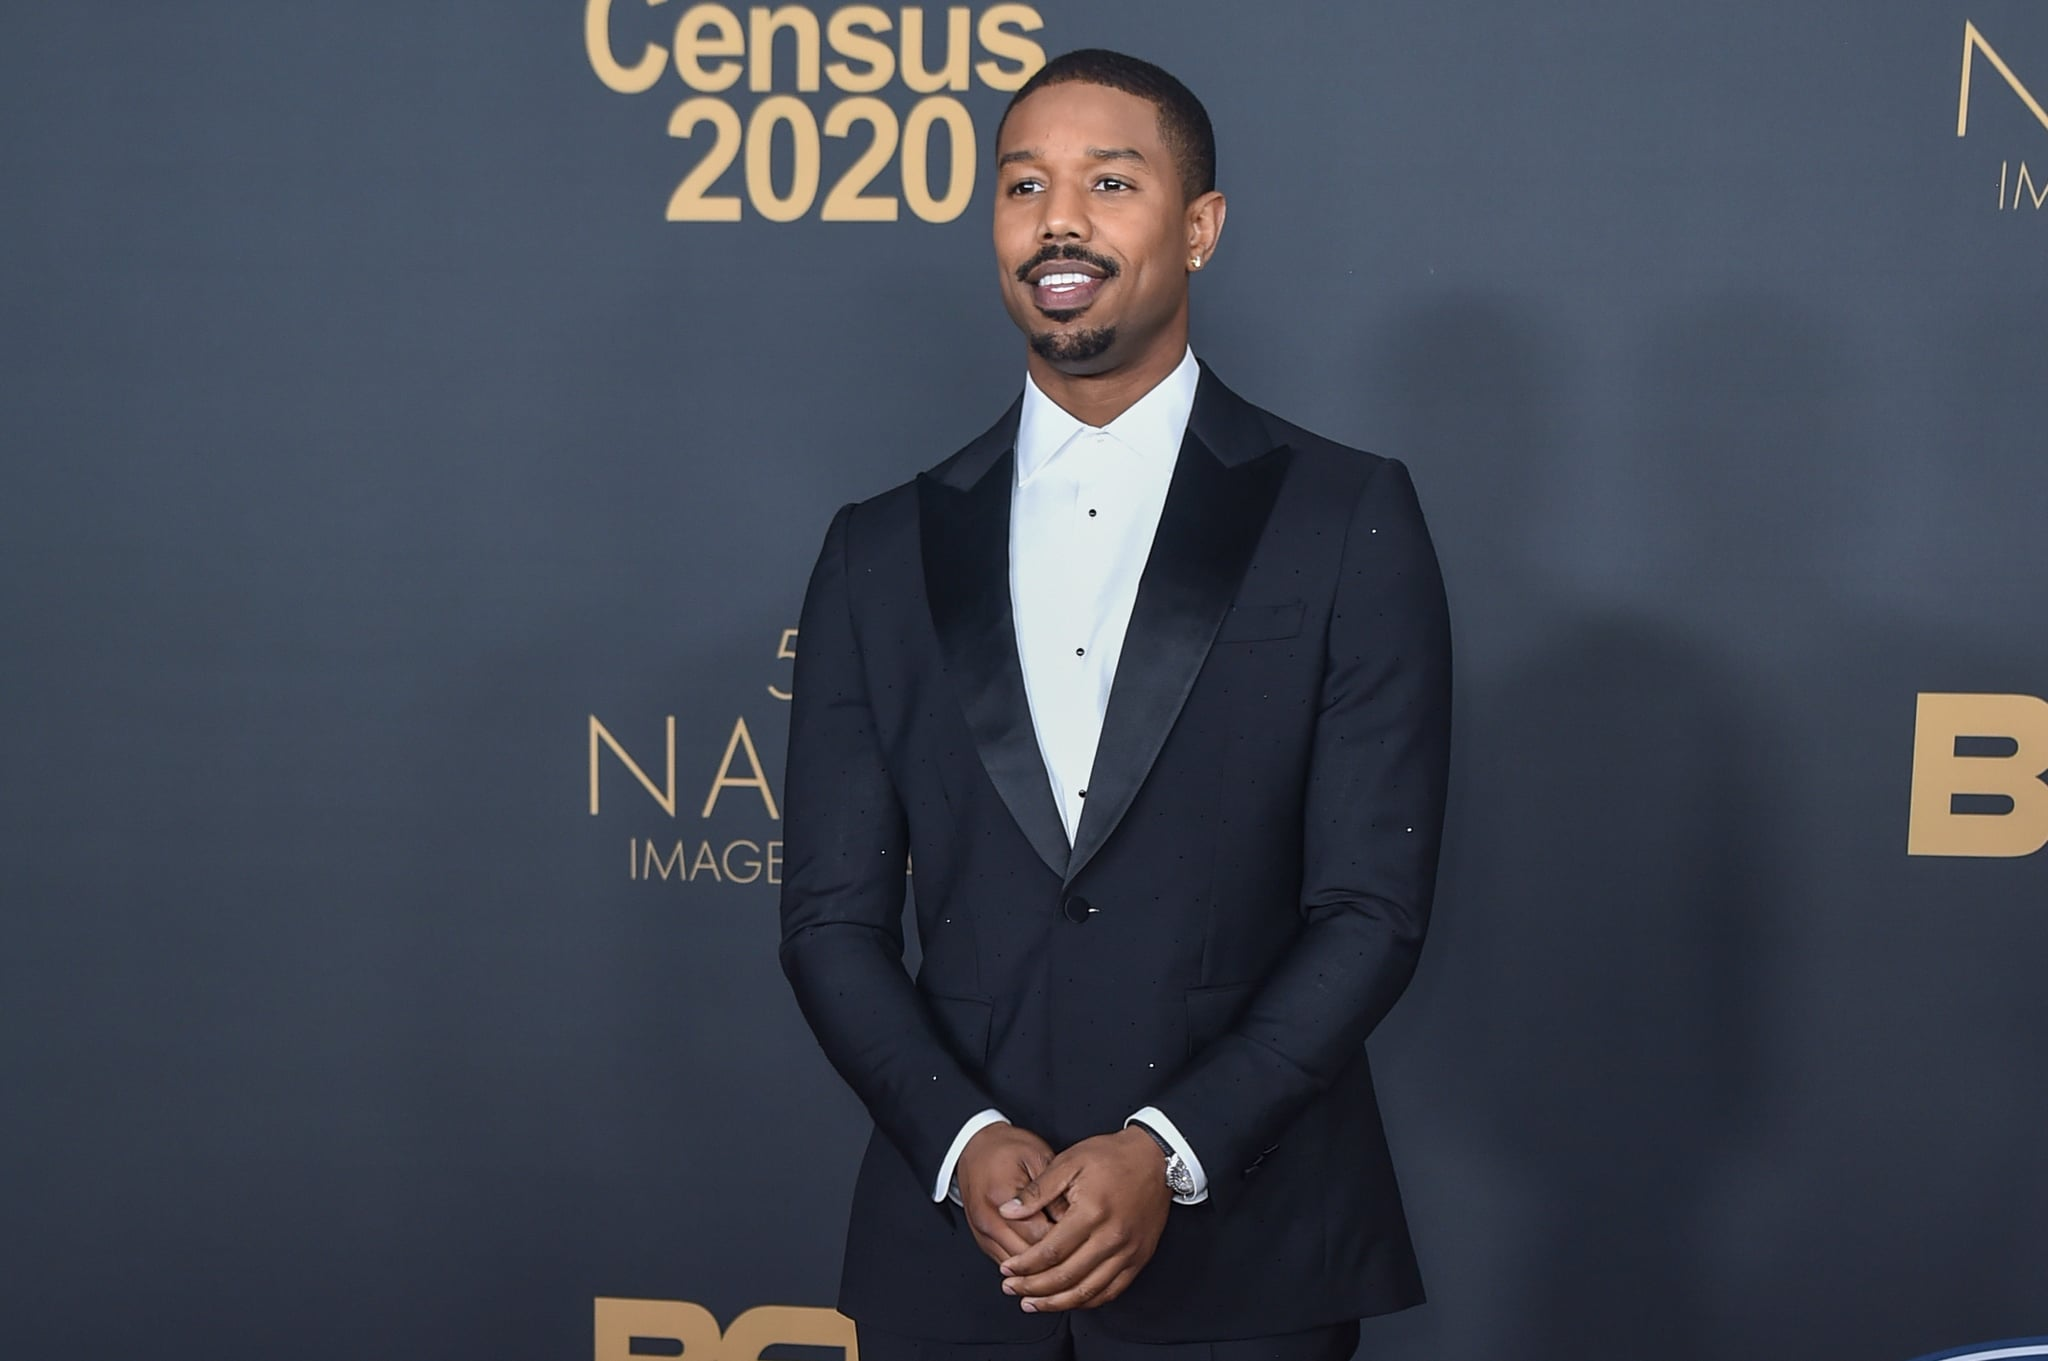 PASADENA, CALIFORNIA - FEBRUARY 22: Michael B. Jordan attends the 51st NAACP Image Awards at the Pasadena Civic Auditorium on February 22, 2020 in Pasadena, California. (Photo by Aaron J. Thornton/FilmMagic)